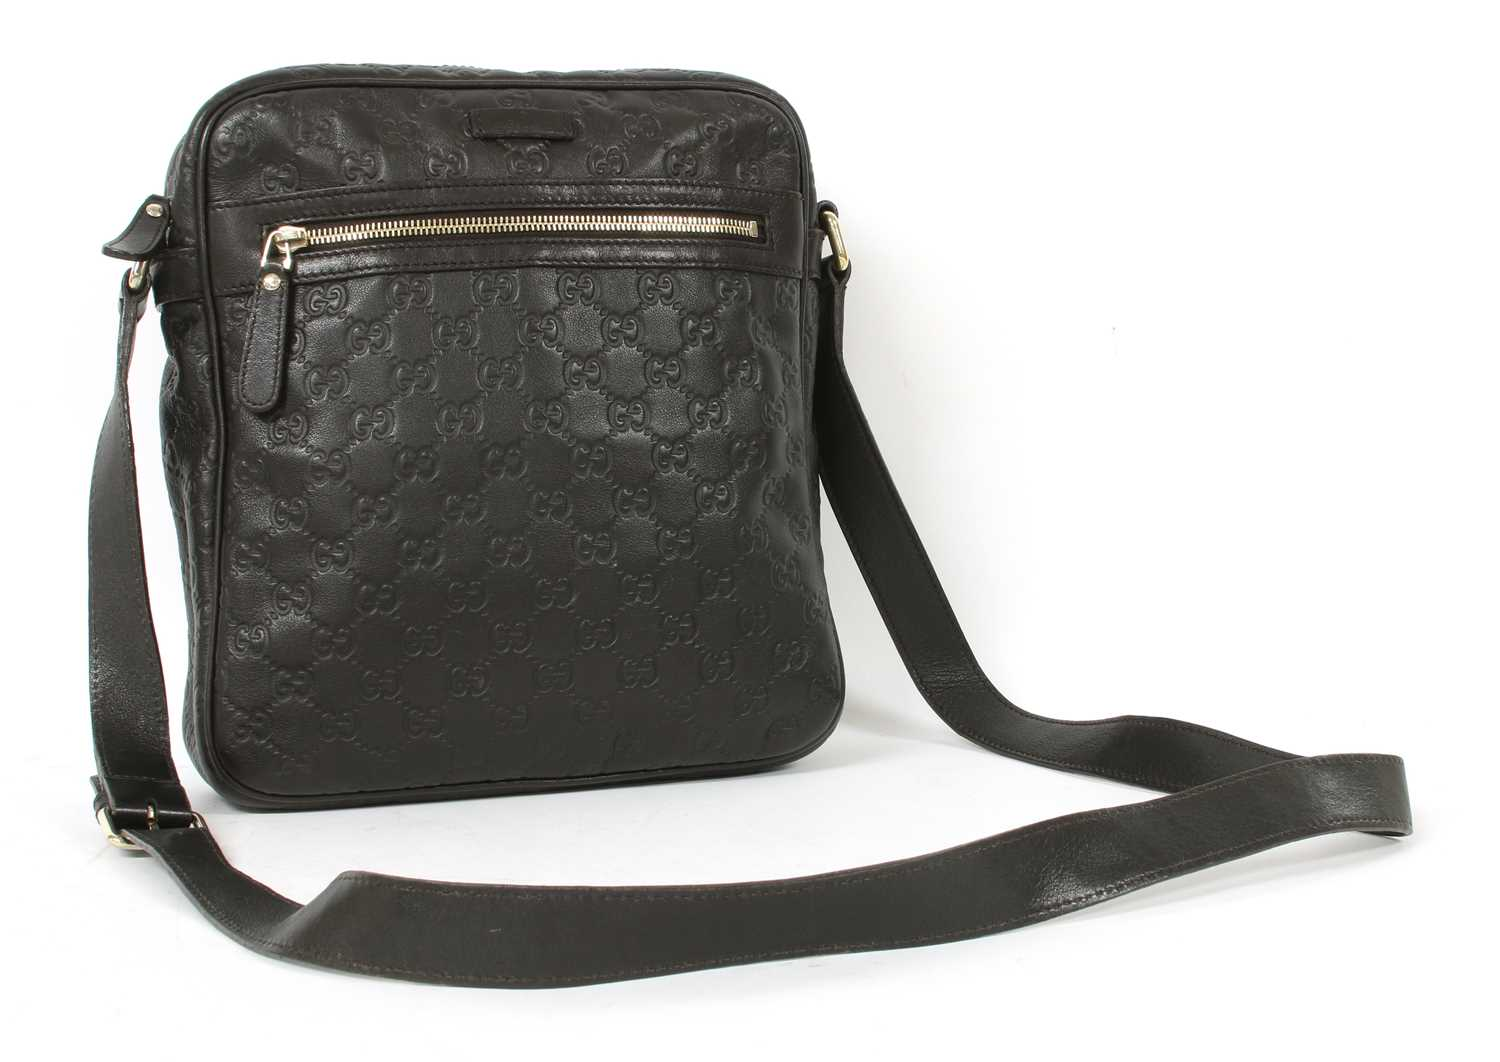 A Gucci black leather crossbody messenger bag